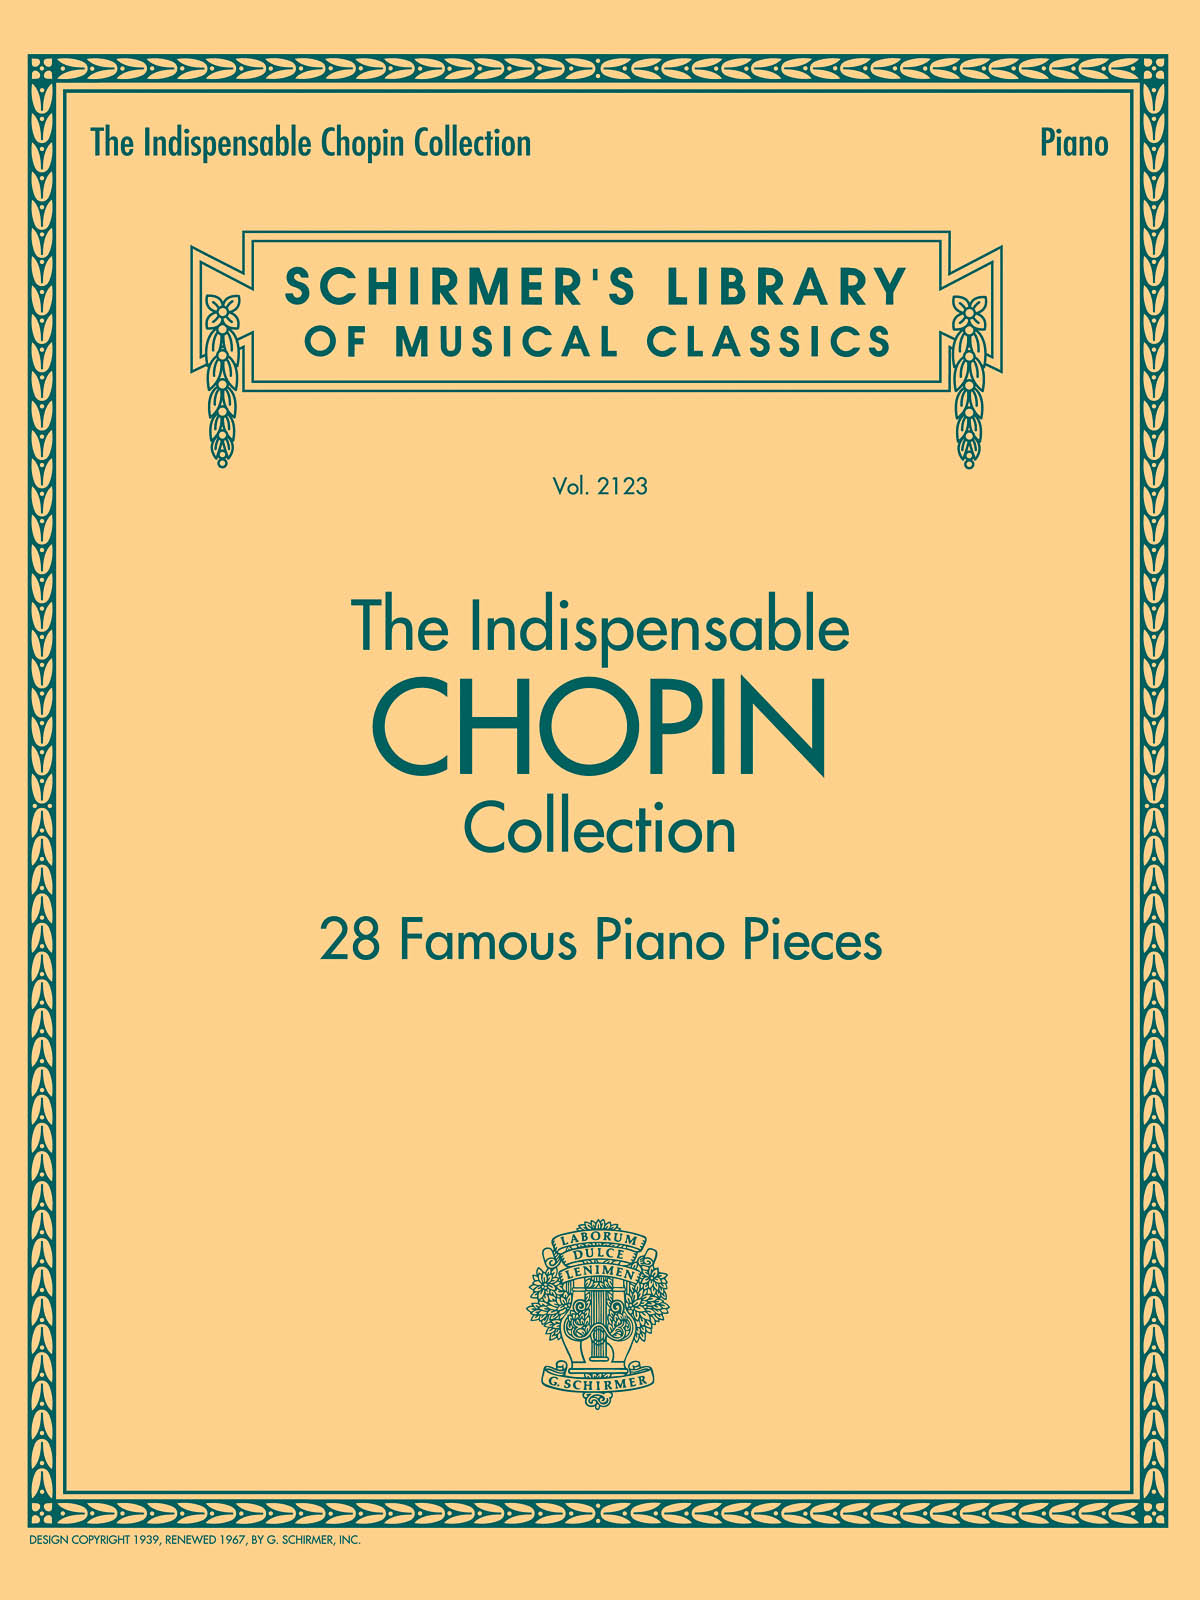 The Indispensable Chopin Collection 28 Famous Piano Pieces (Schirmer's Library of Musical Classics)